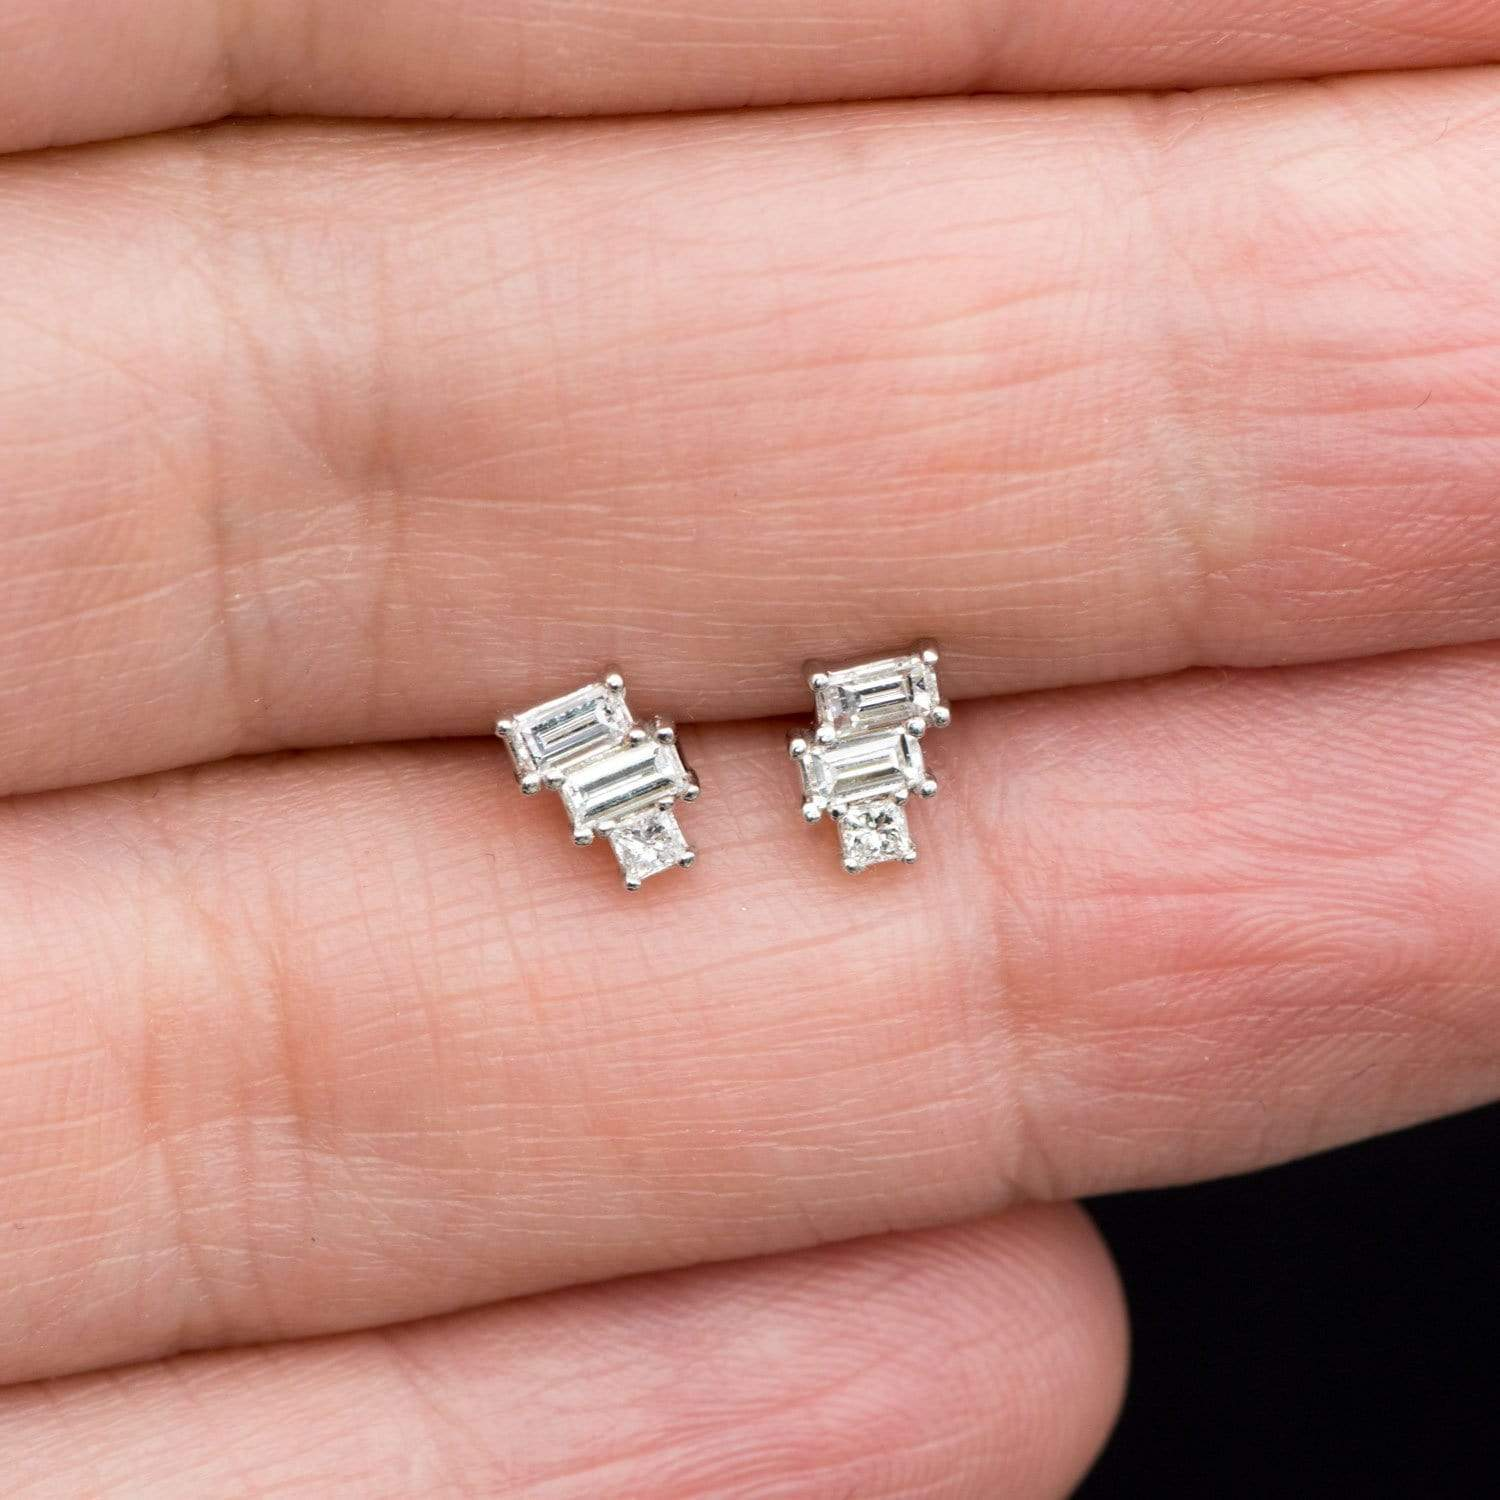 Geometric Art Deco Inspired Baguette and Princess Diamond Cluster Stud Earrings